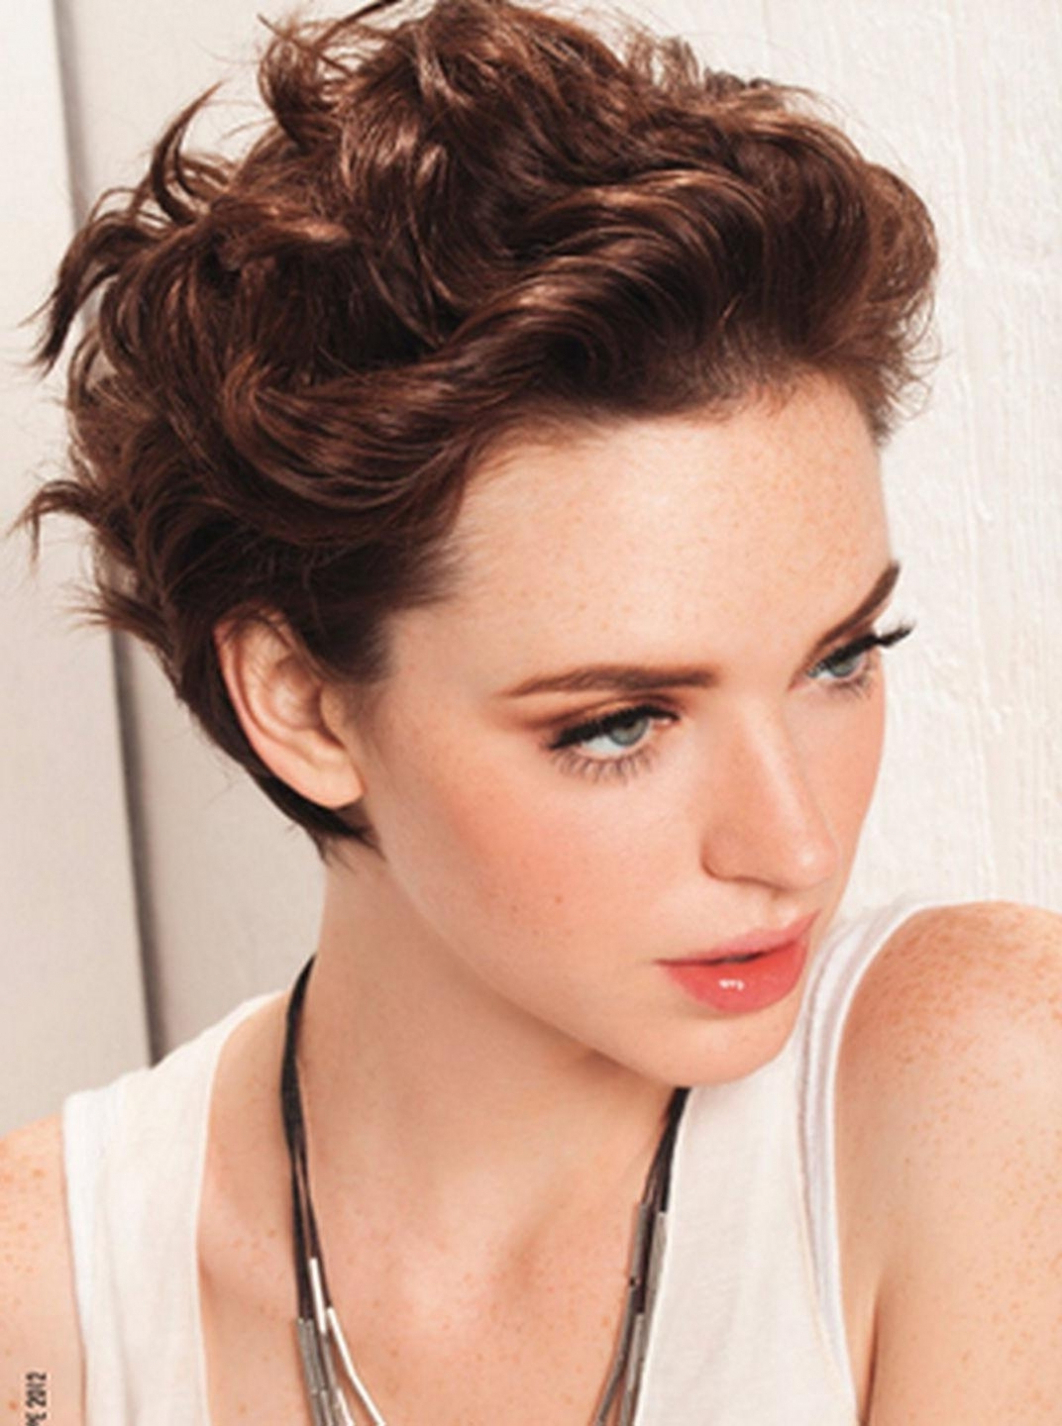 Hair Cuts : Winsome Short Haircuts For Thick Wavy Hair Over With Regard To Short Haircuts For Wavy Hair And Round Faces (View 21 of 25)